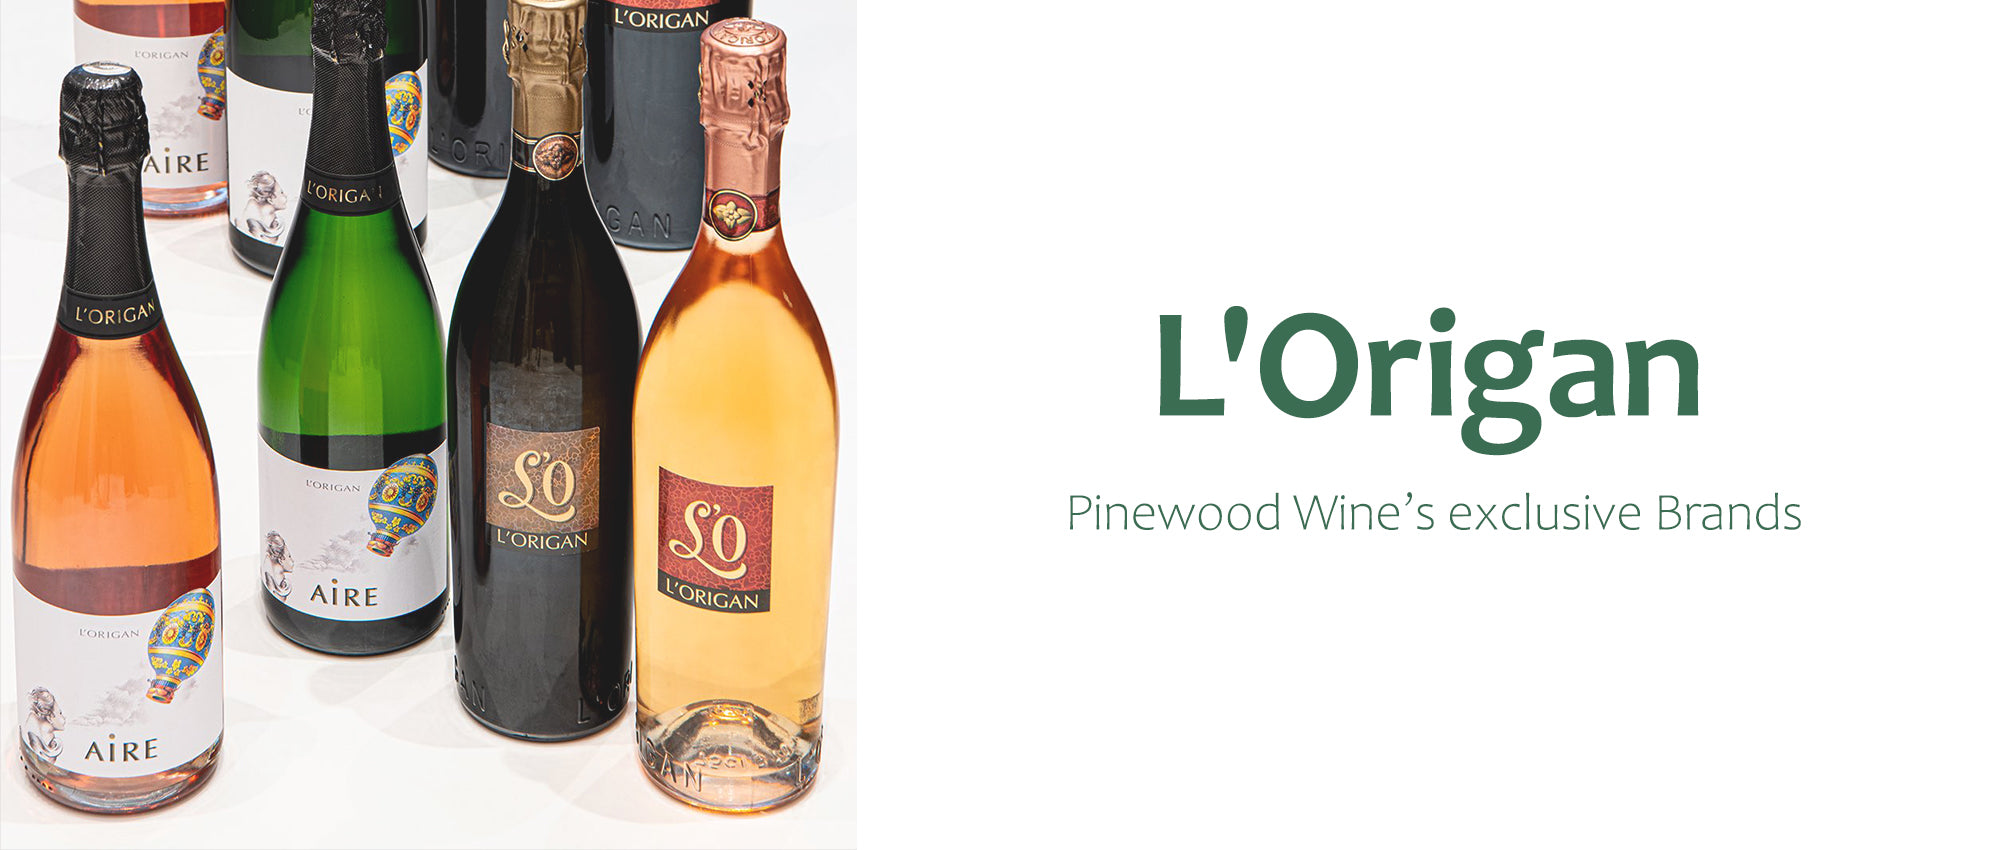 Pinewood Wine: L'Origan